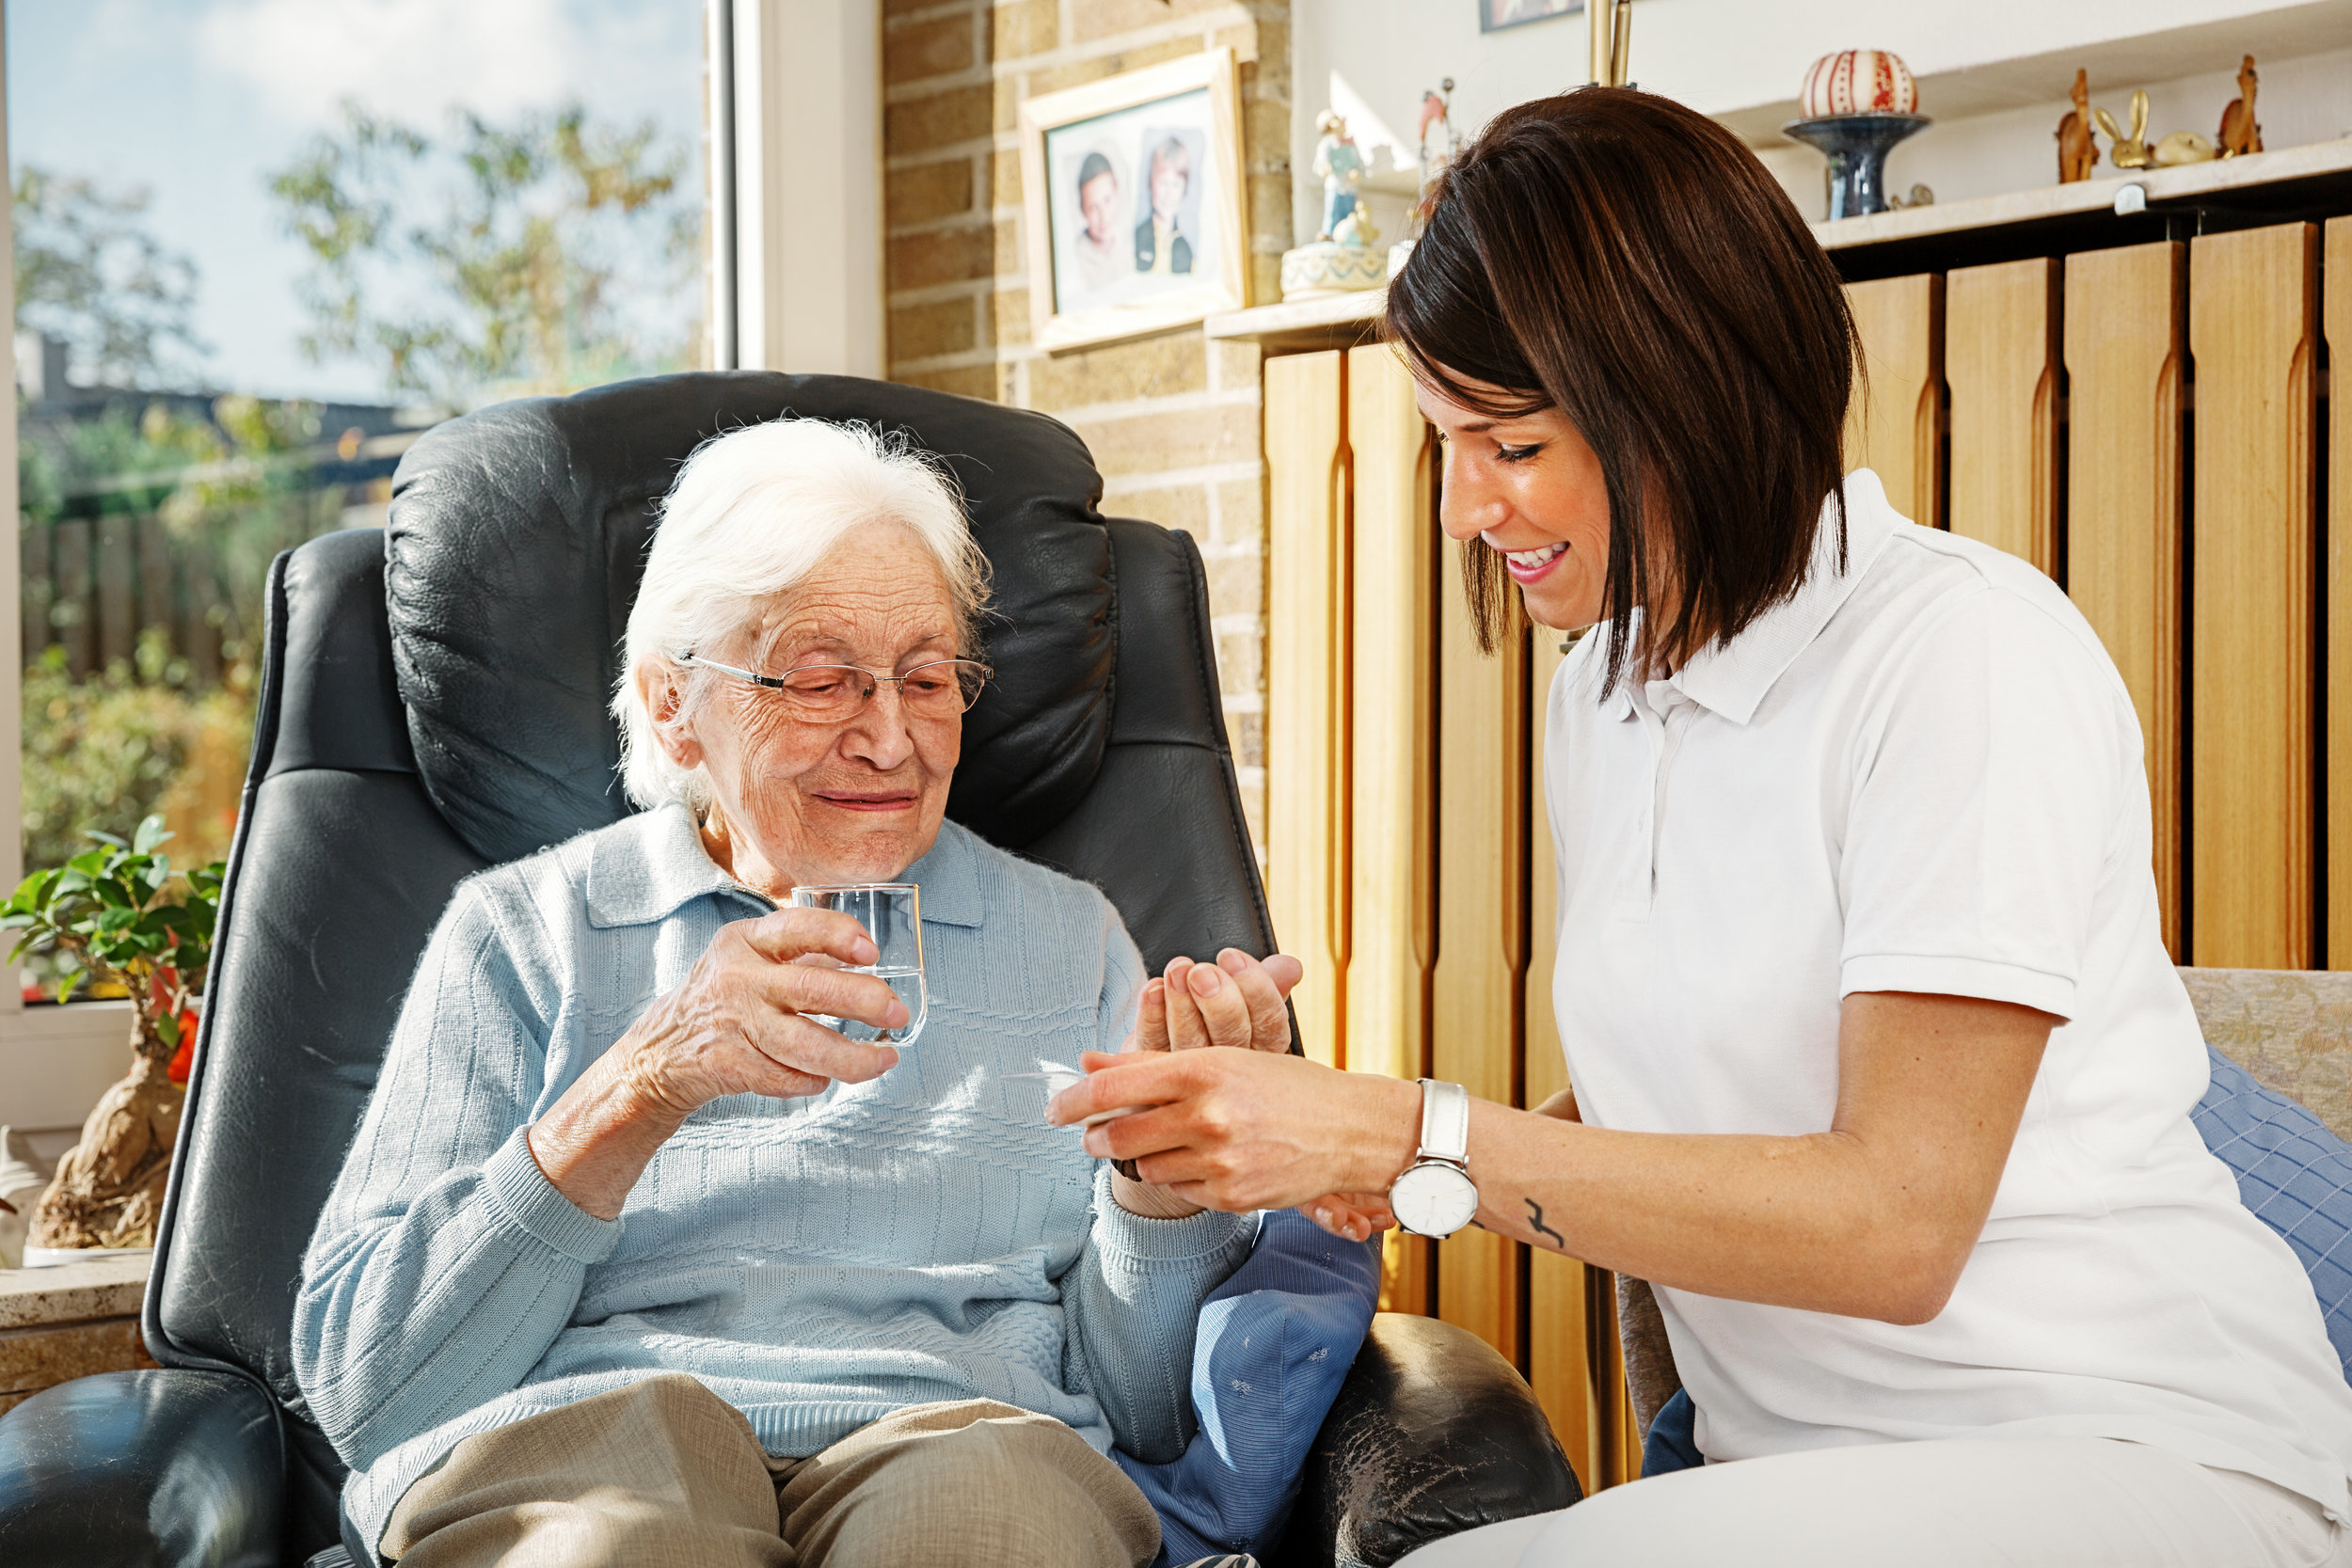 What is Home Care? - Home care is categorized as non-skilled personal care services in the Health Care industry. It consists of assisting patients with activities of daily living (ADLs) inside their home or living facility. The goal is to keep someone independent and in the comfort of their own home for as long as possible. See our Services page for more specifics on the what that assistance might look like.